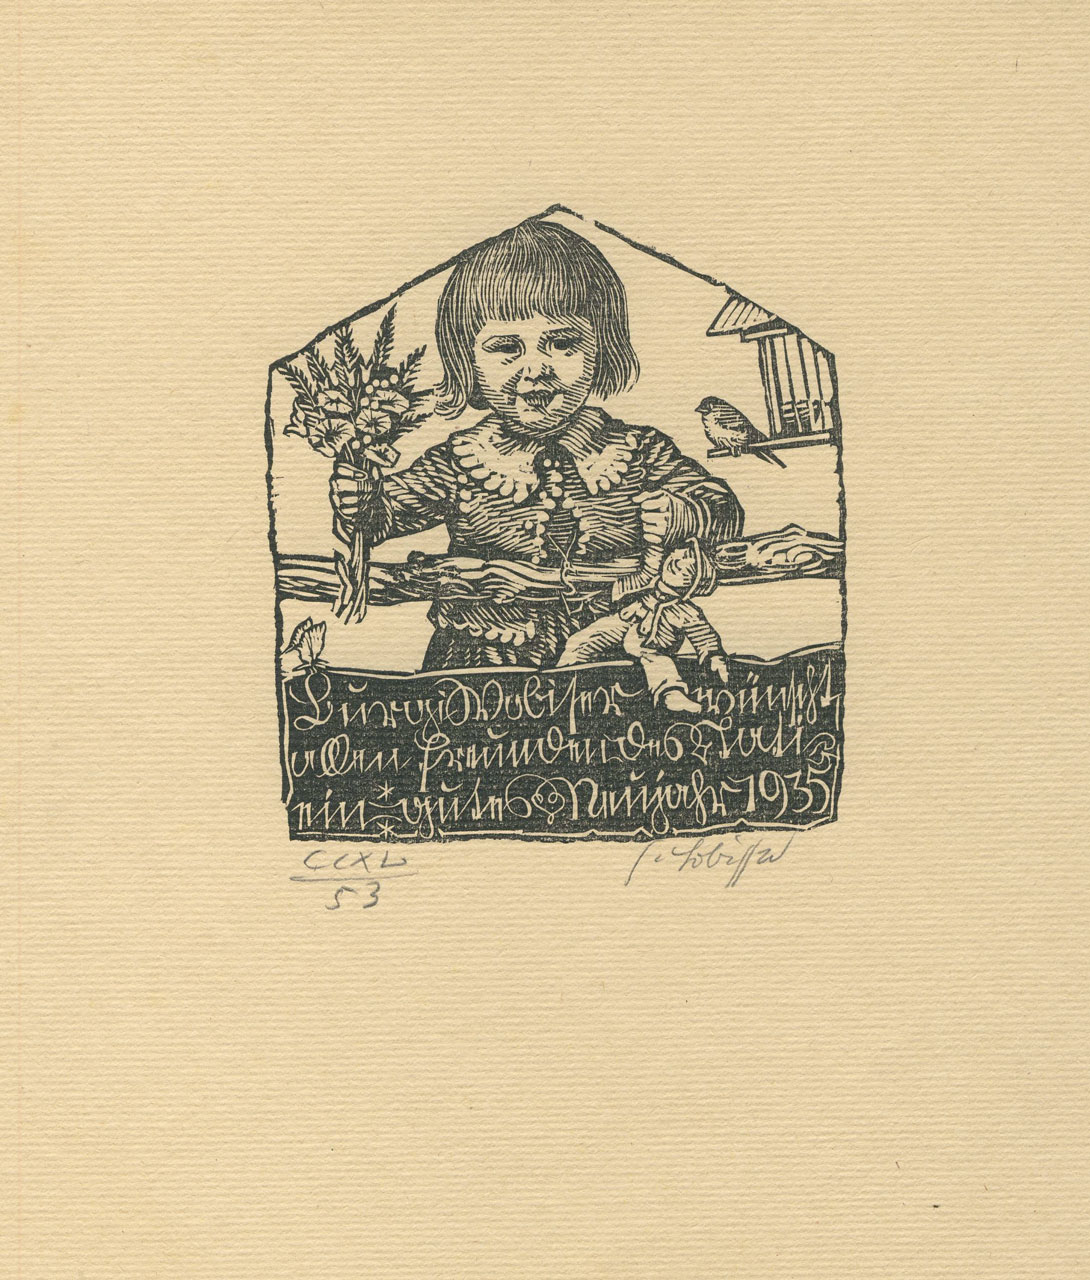 Switbert Lobisser (1878-1943), Mein Neujahrswunsch, 1934, woodcut, 21x9.5cm, signed, titled and numbered 53 from op.240